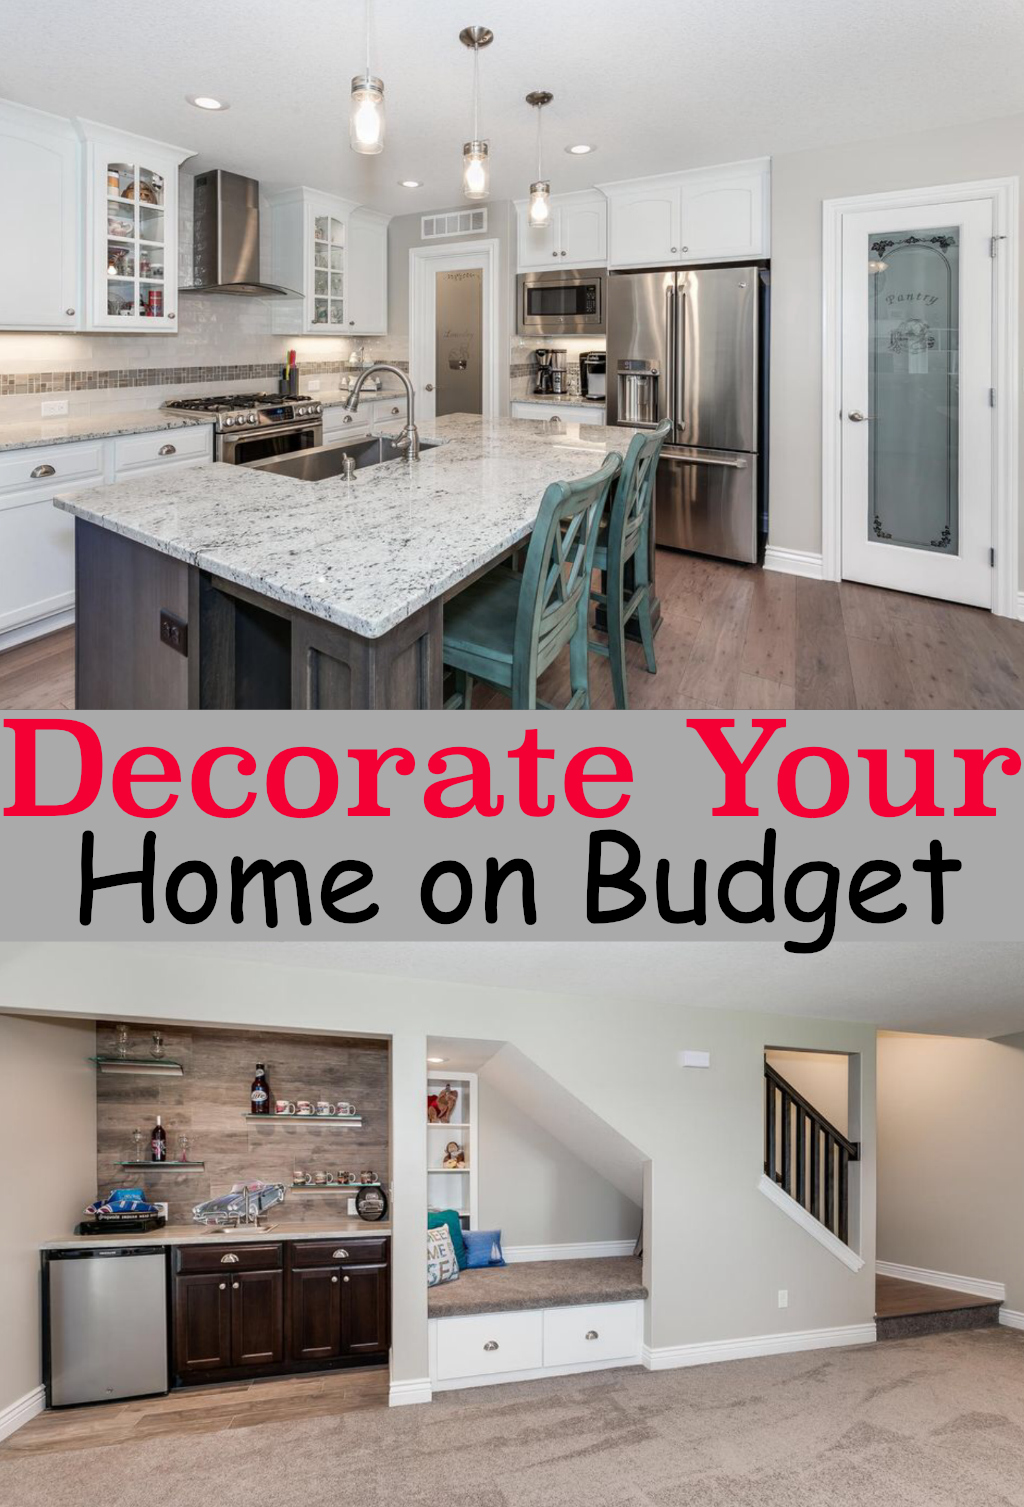 Creating DIY projects to decorate with is always a fun thing to do; you can come up with useful items for your home without spending a lot of money.